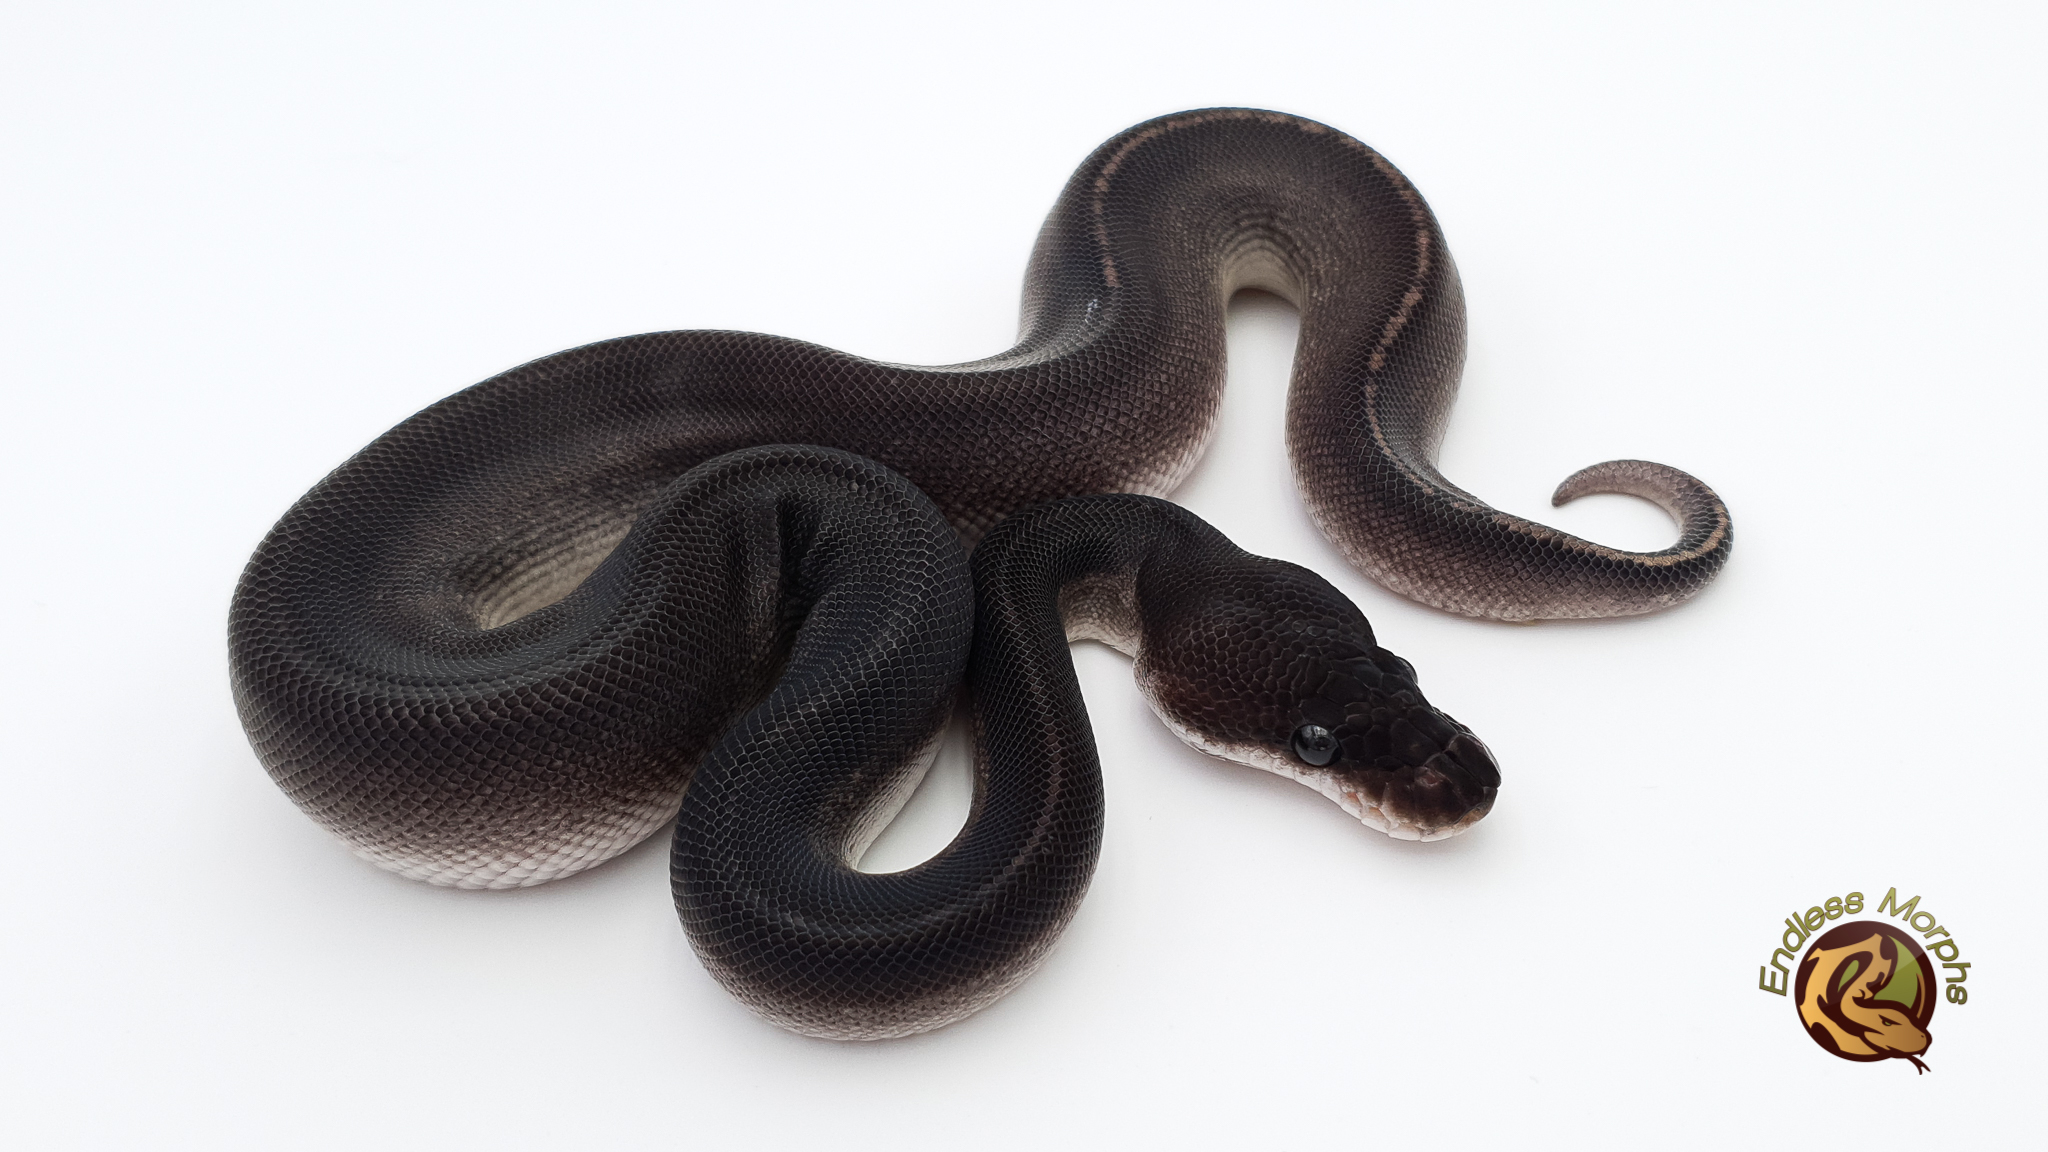 1.0 Black Head Phantom Super Cinnamon Königspython